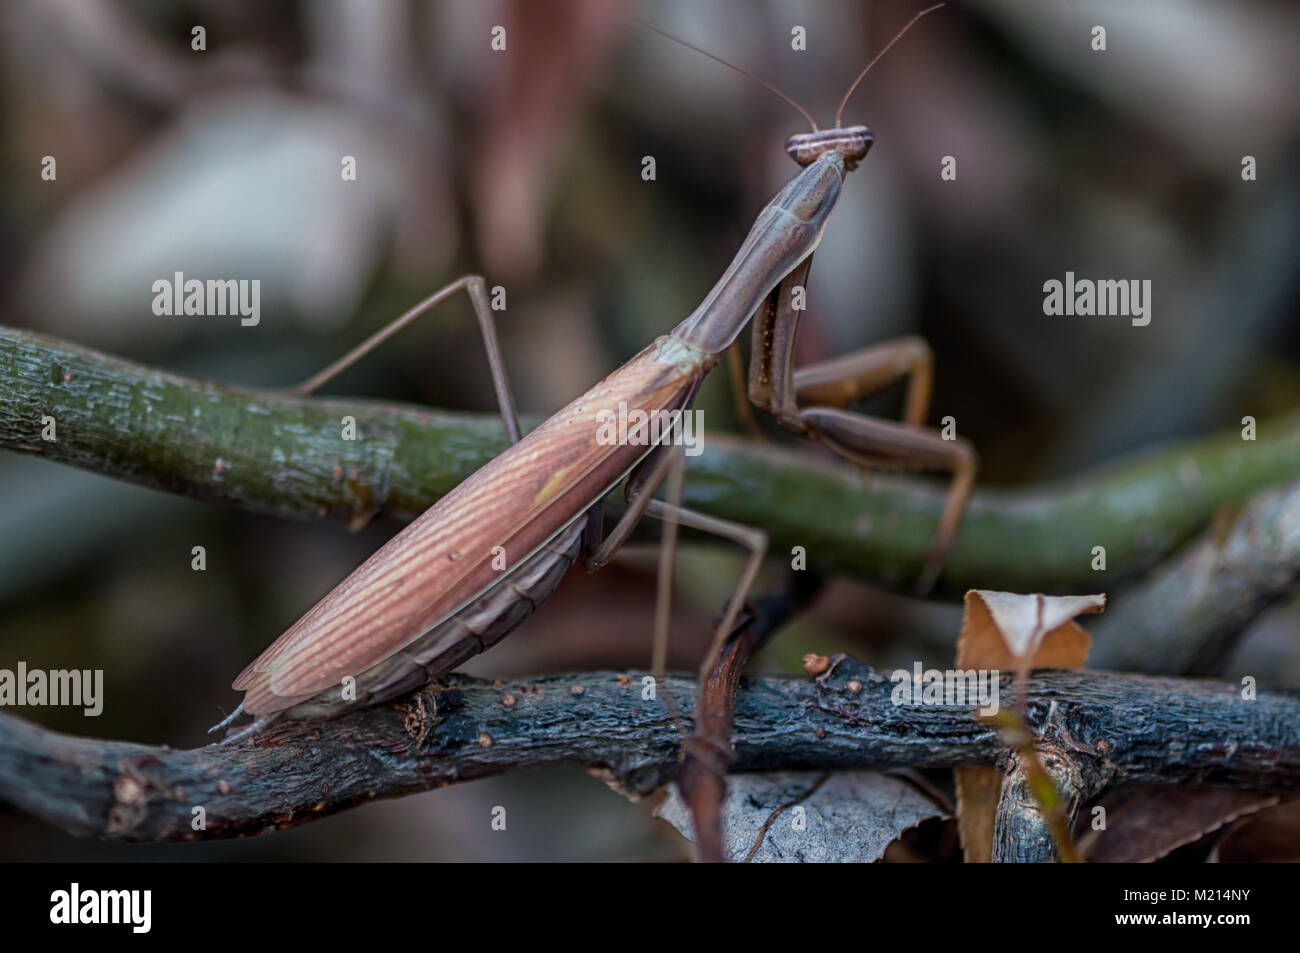 Closeup of a Praying Mantis (European mantis). Shallow depth of field. Stock Photo